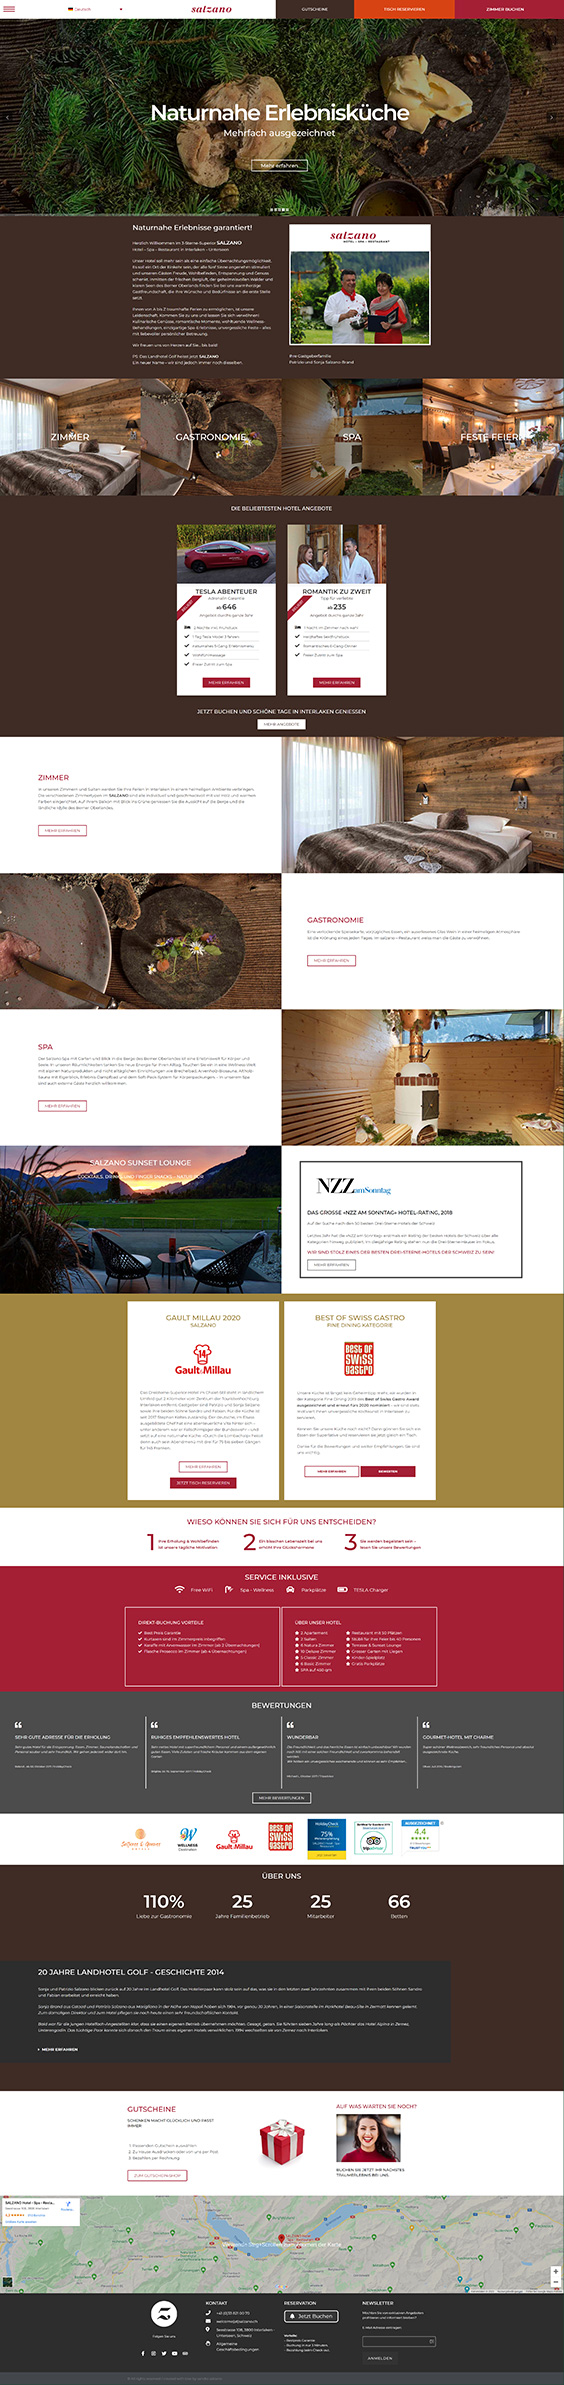 website-salzano-layout_02